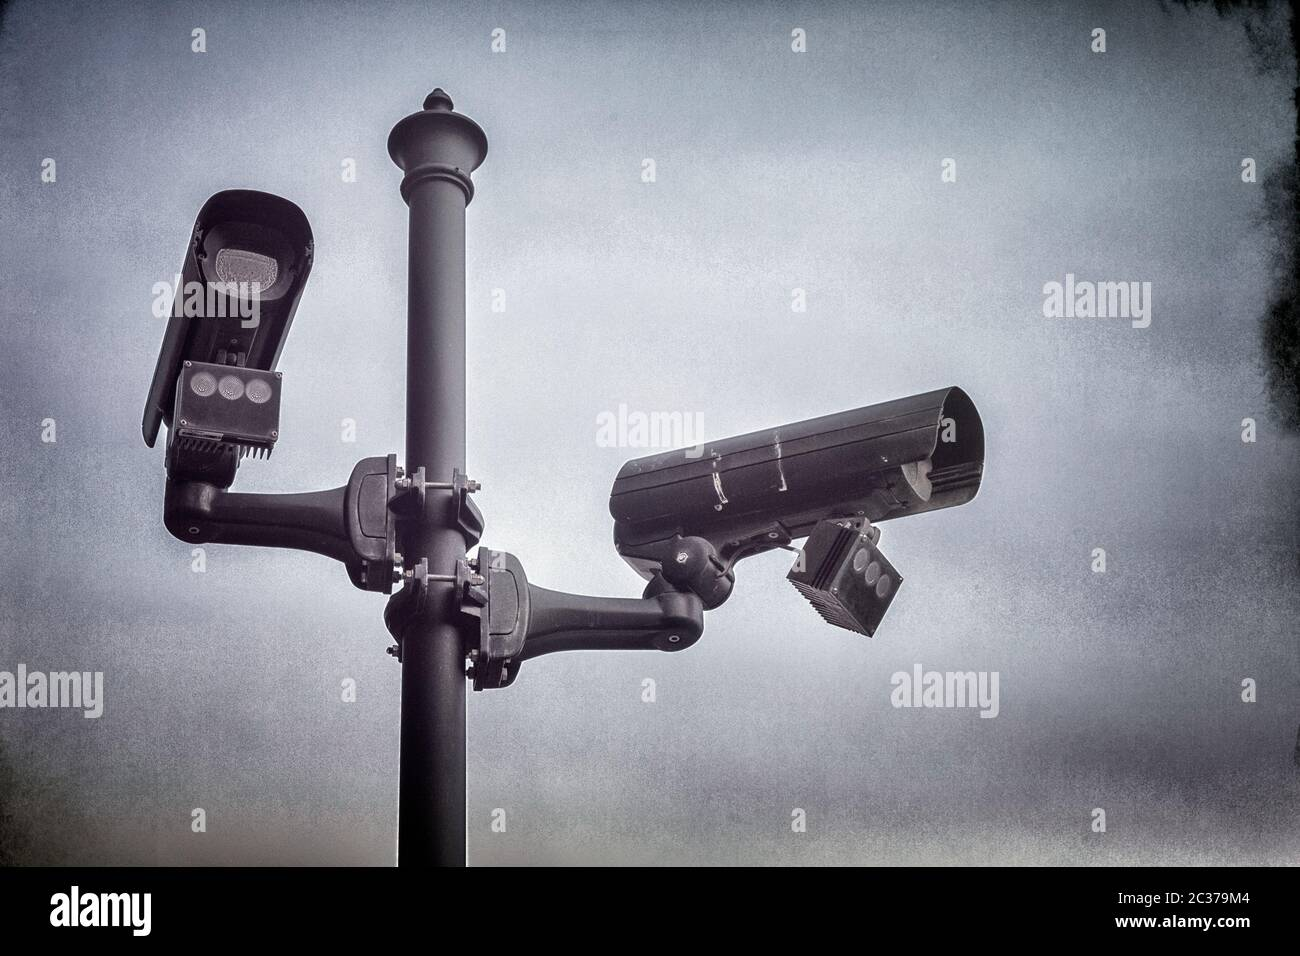 Two CCTV security cameras mounted on a pole in street. Stock Photo